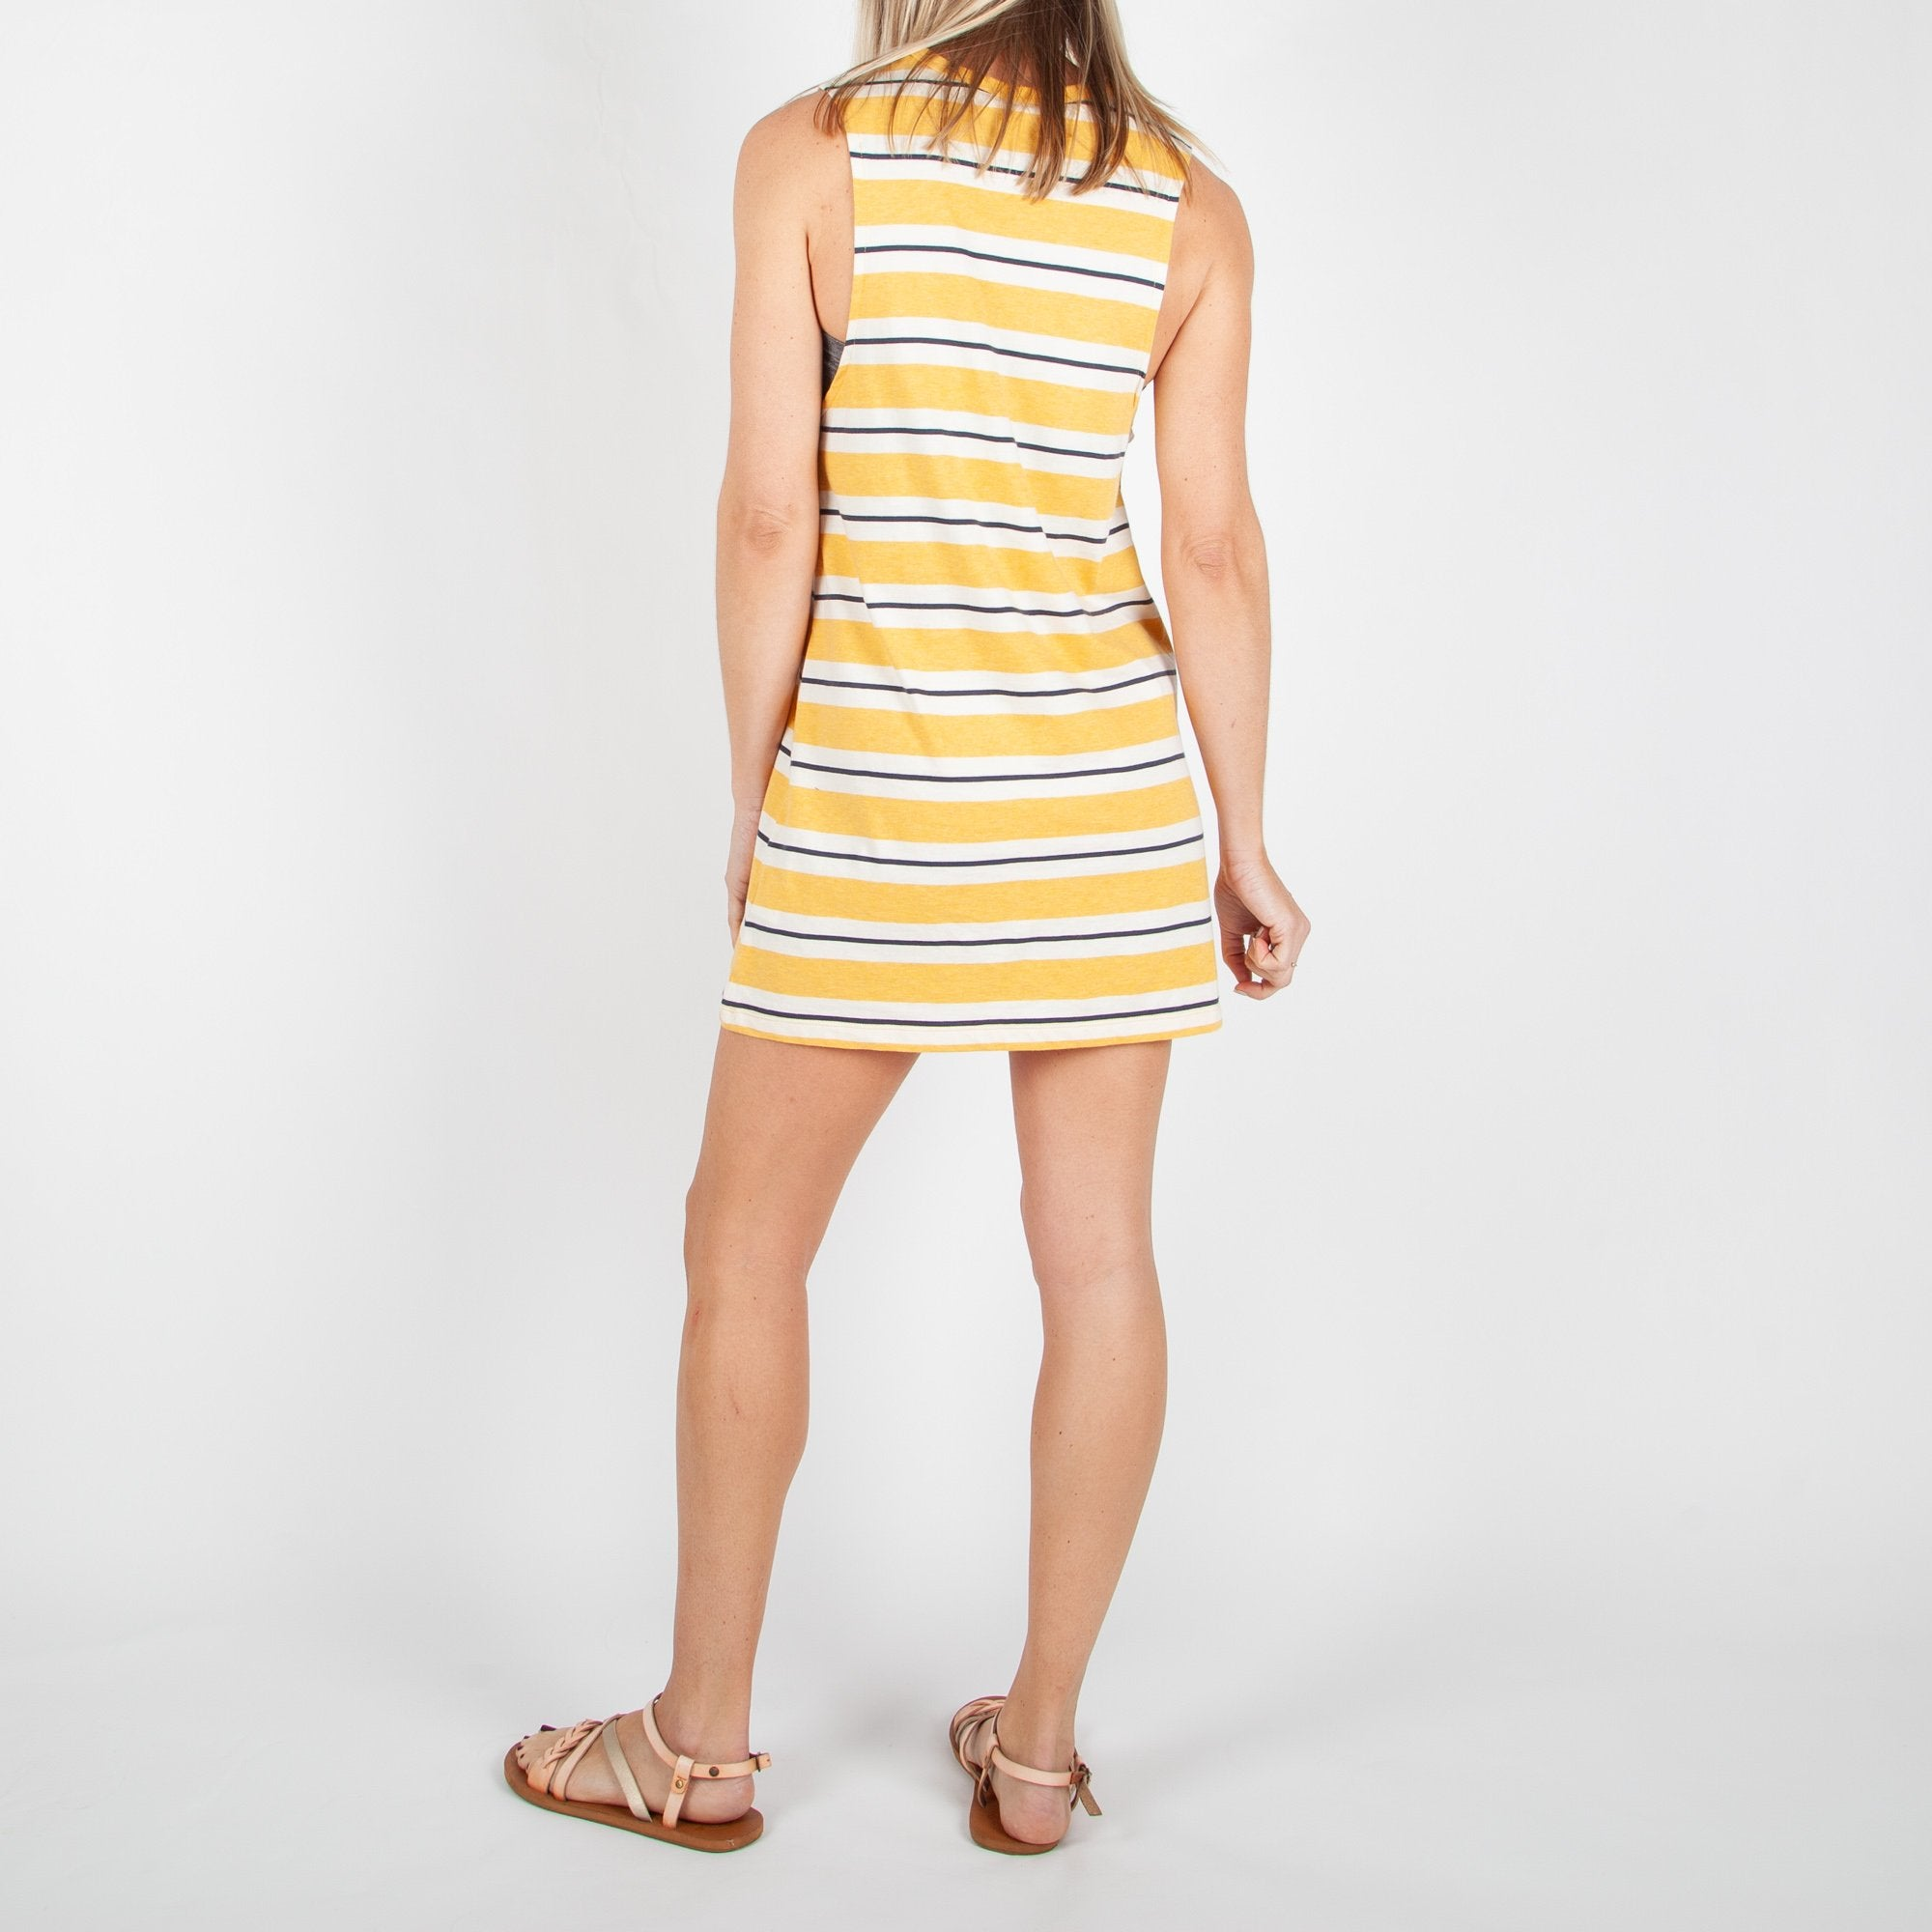 South Coast Dress - Golden Yellow Stripe image 5